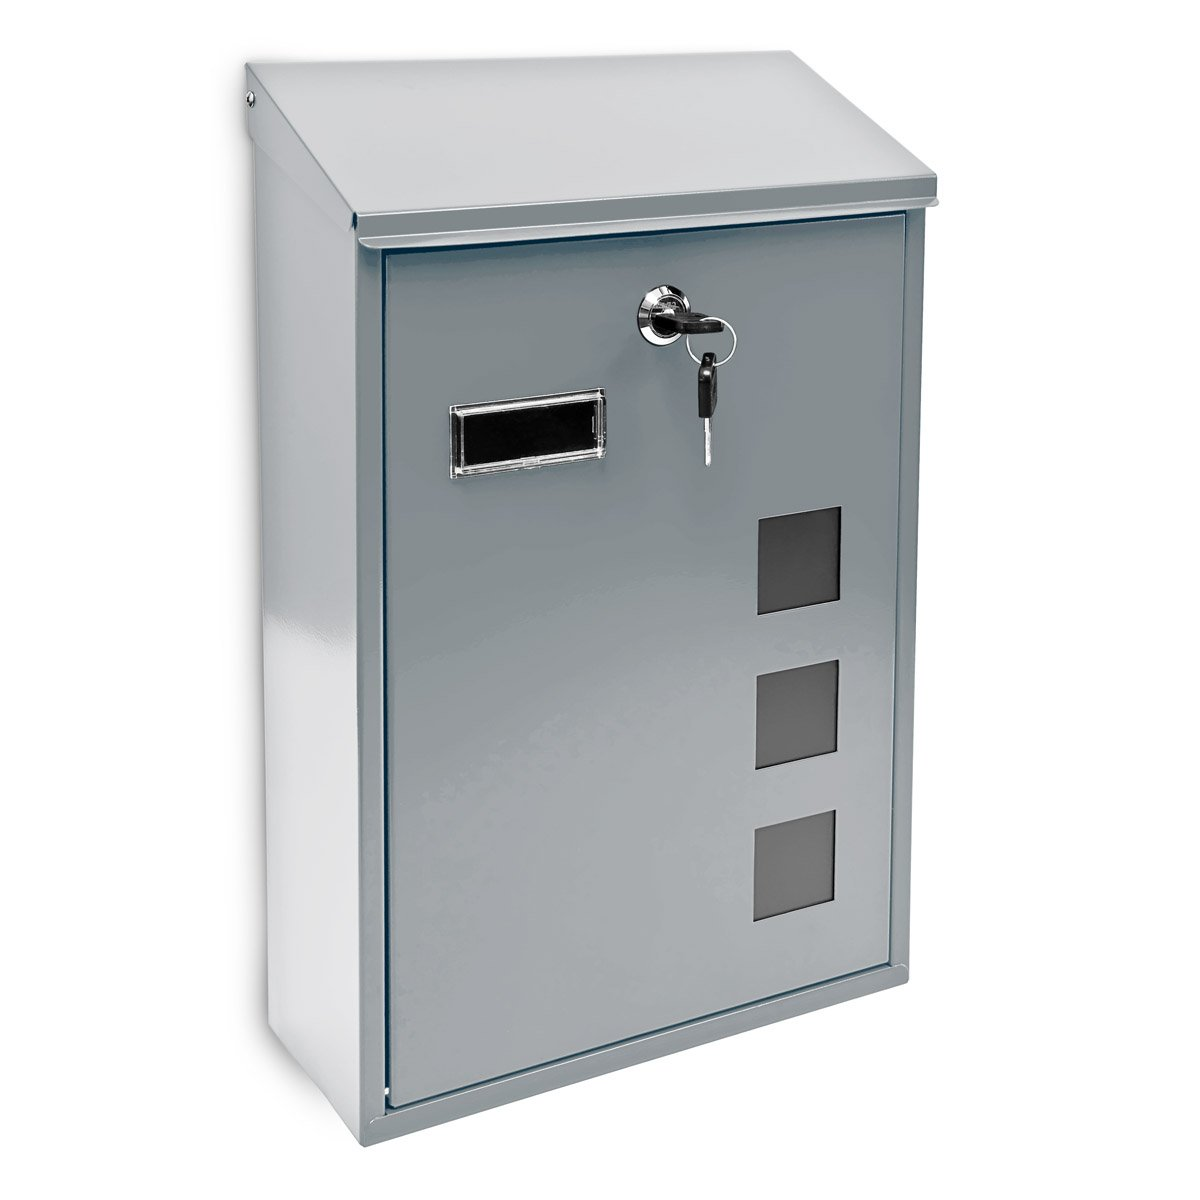 Relaxdays Design Mailbox/Letterbox Metal 4 Colours 3 Viewing Windows 25x40 cm Post Mail Secure, Silver